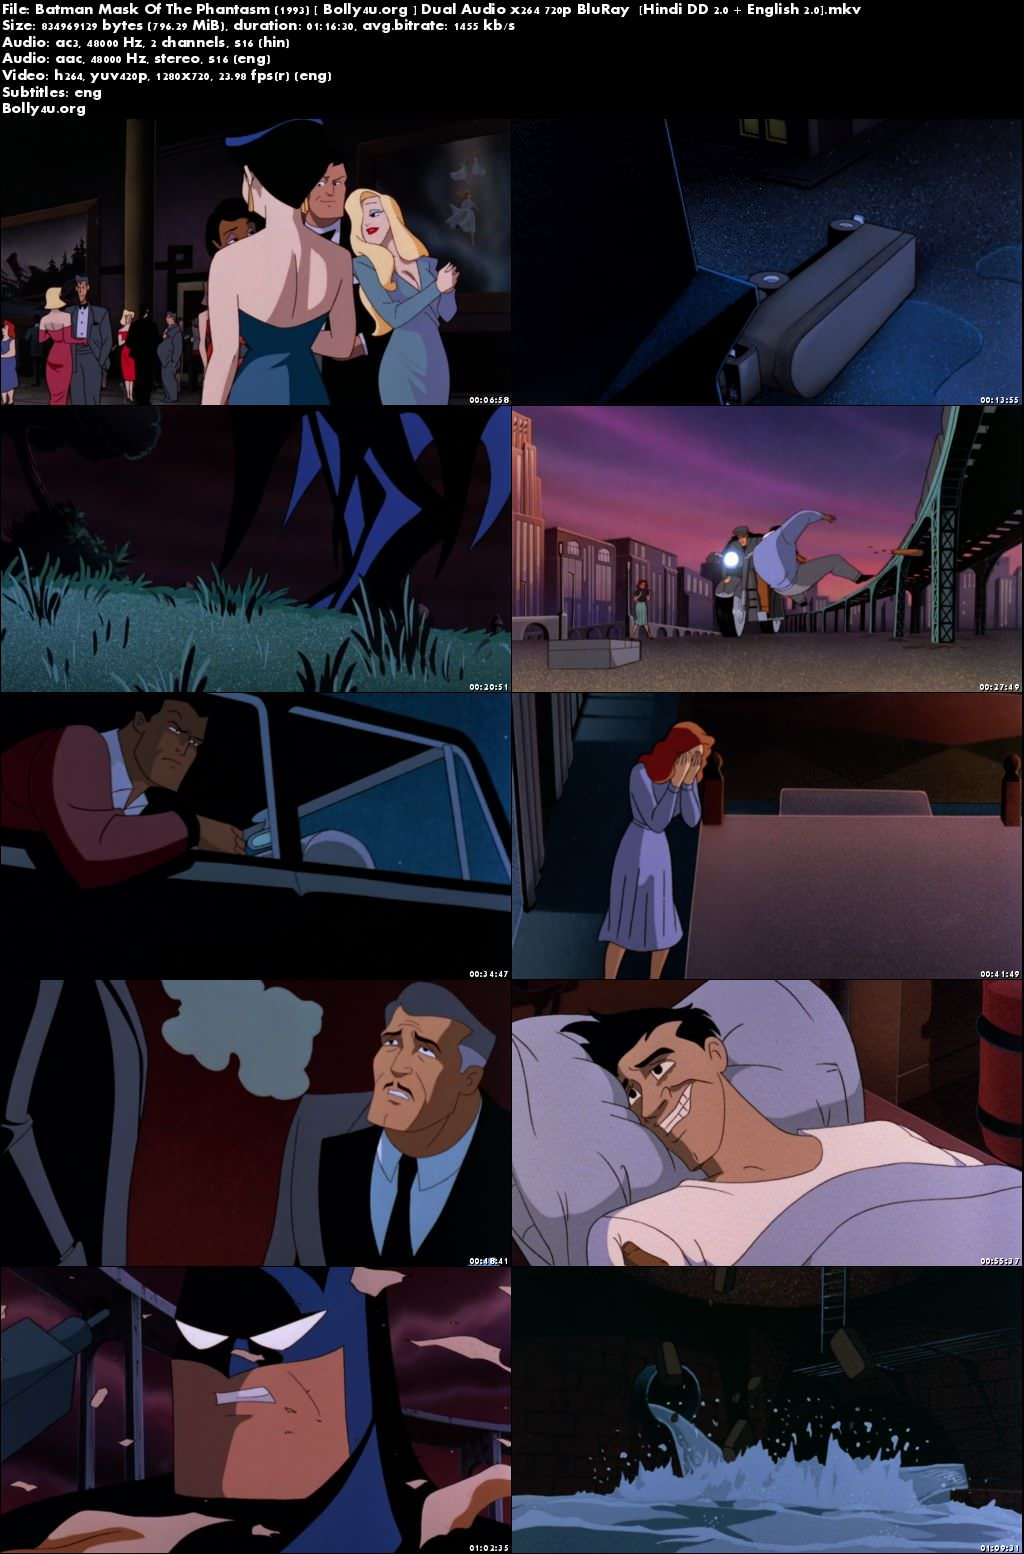 Batman Mask Of The Phantasm 1993 BRRip 250MB Hindi Dual Audio 480p Download